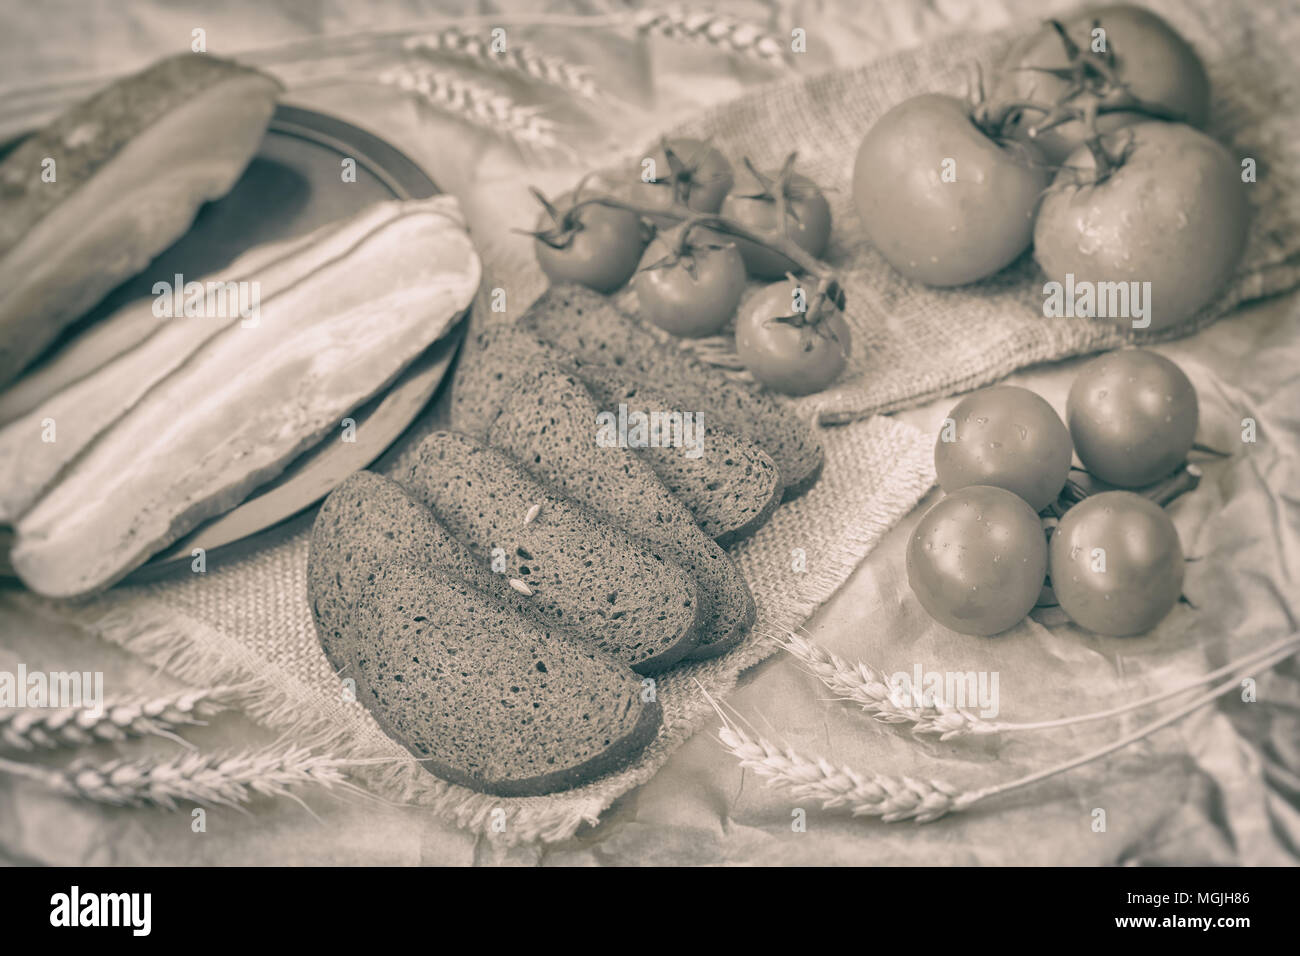 Vintage sepia style of fresh organic food. Traditional quick tasty snack. Slices of bacon, rye black bread, ripe red tomatoes on coarse burlap. Top vi - Stock Image